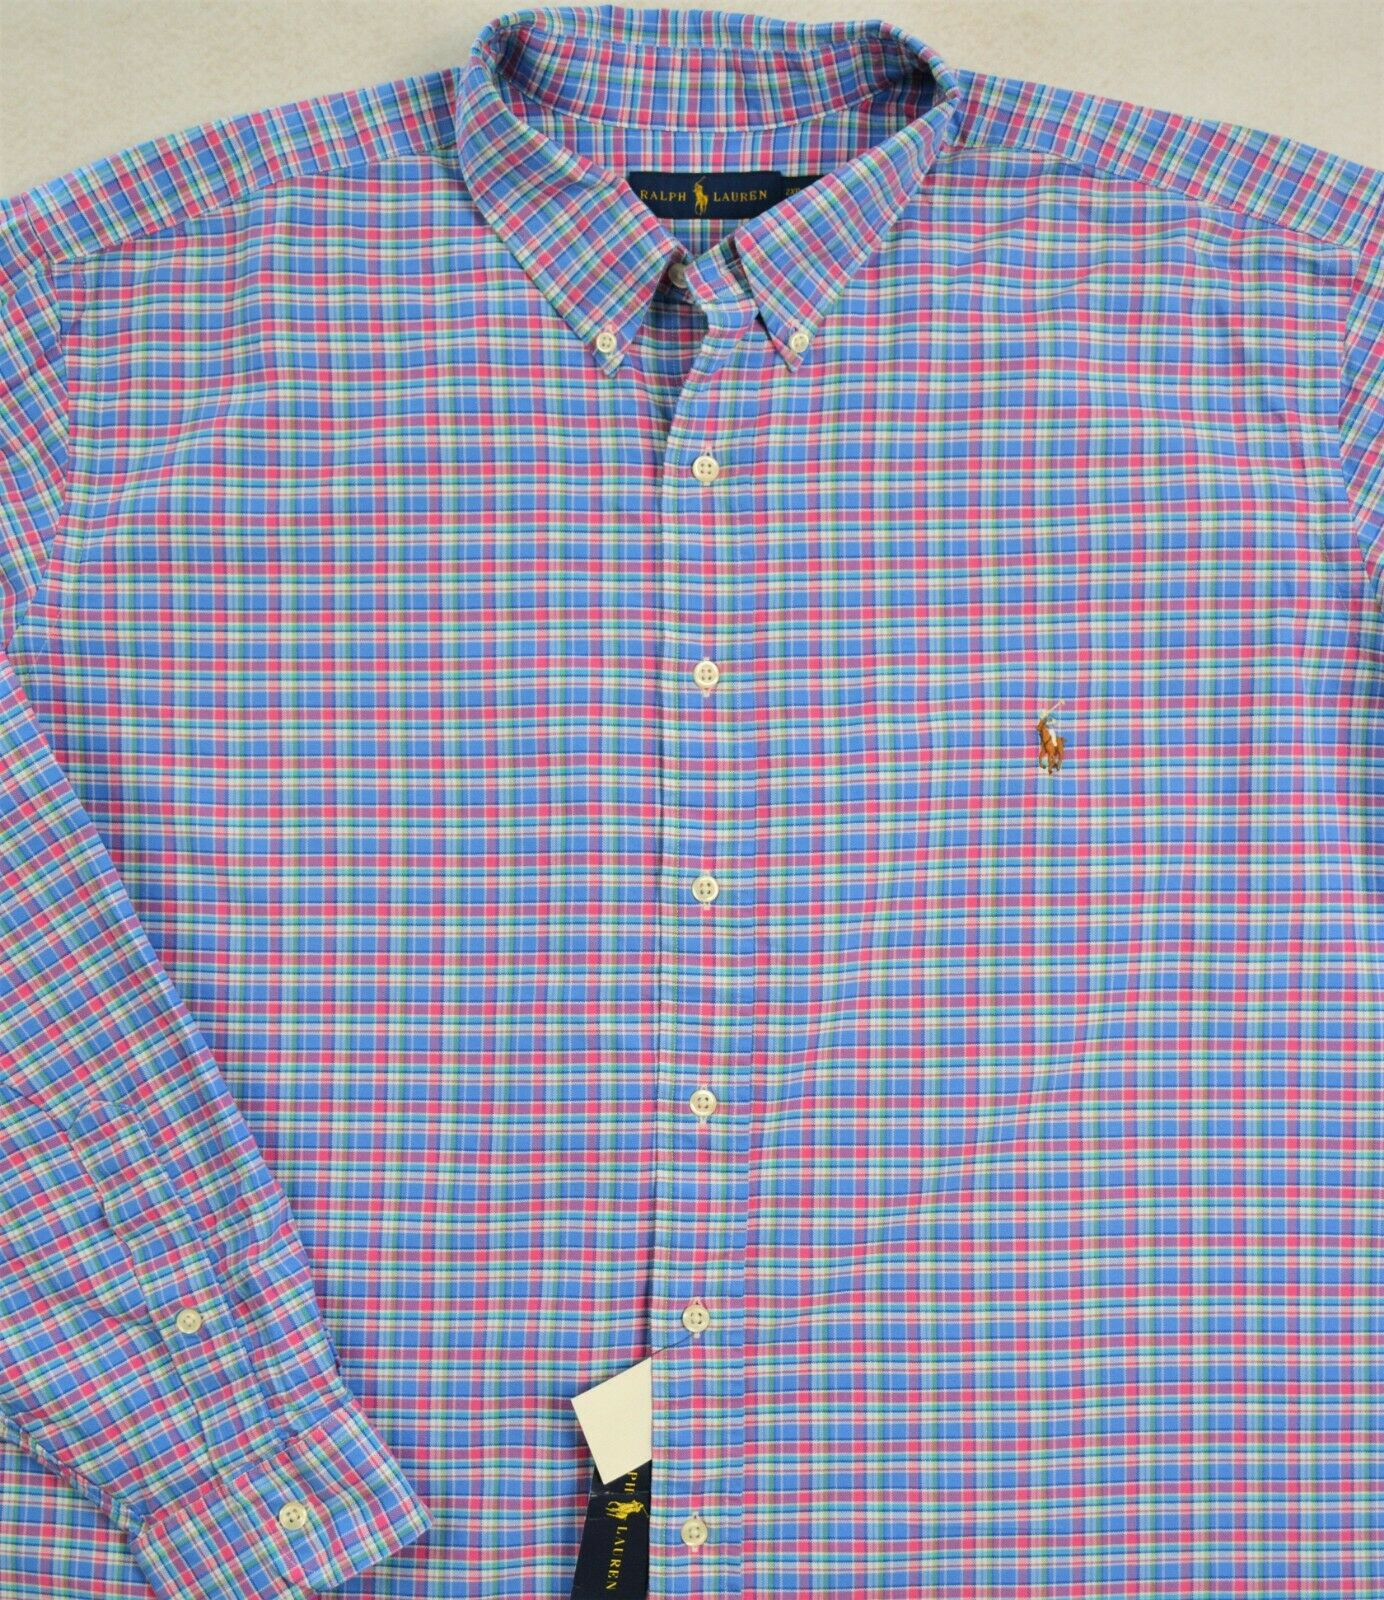 Ralph Lauren Shirt Oxford bluee Pink Plaid Long Sleeves 2XB & 2XLT NWT